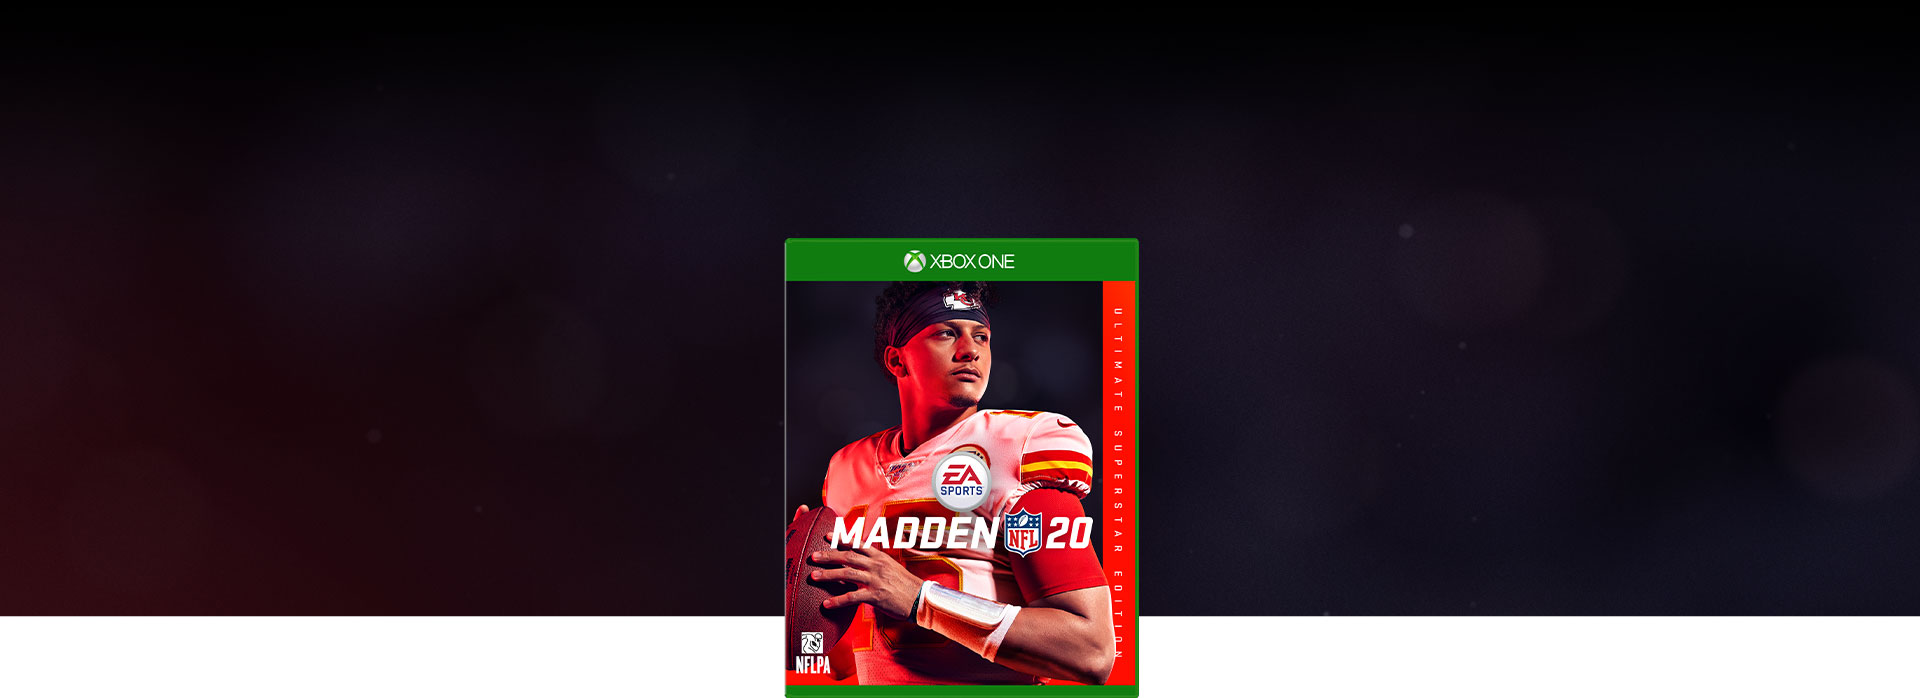 fcf264ab6d3 Madden NFL 20 boxshot, black to red faded background